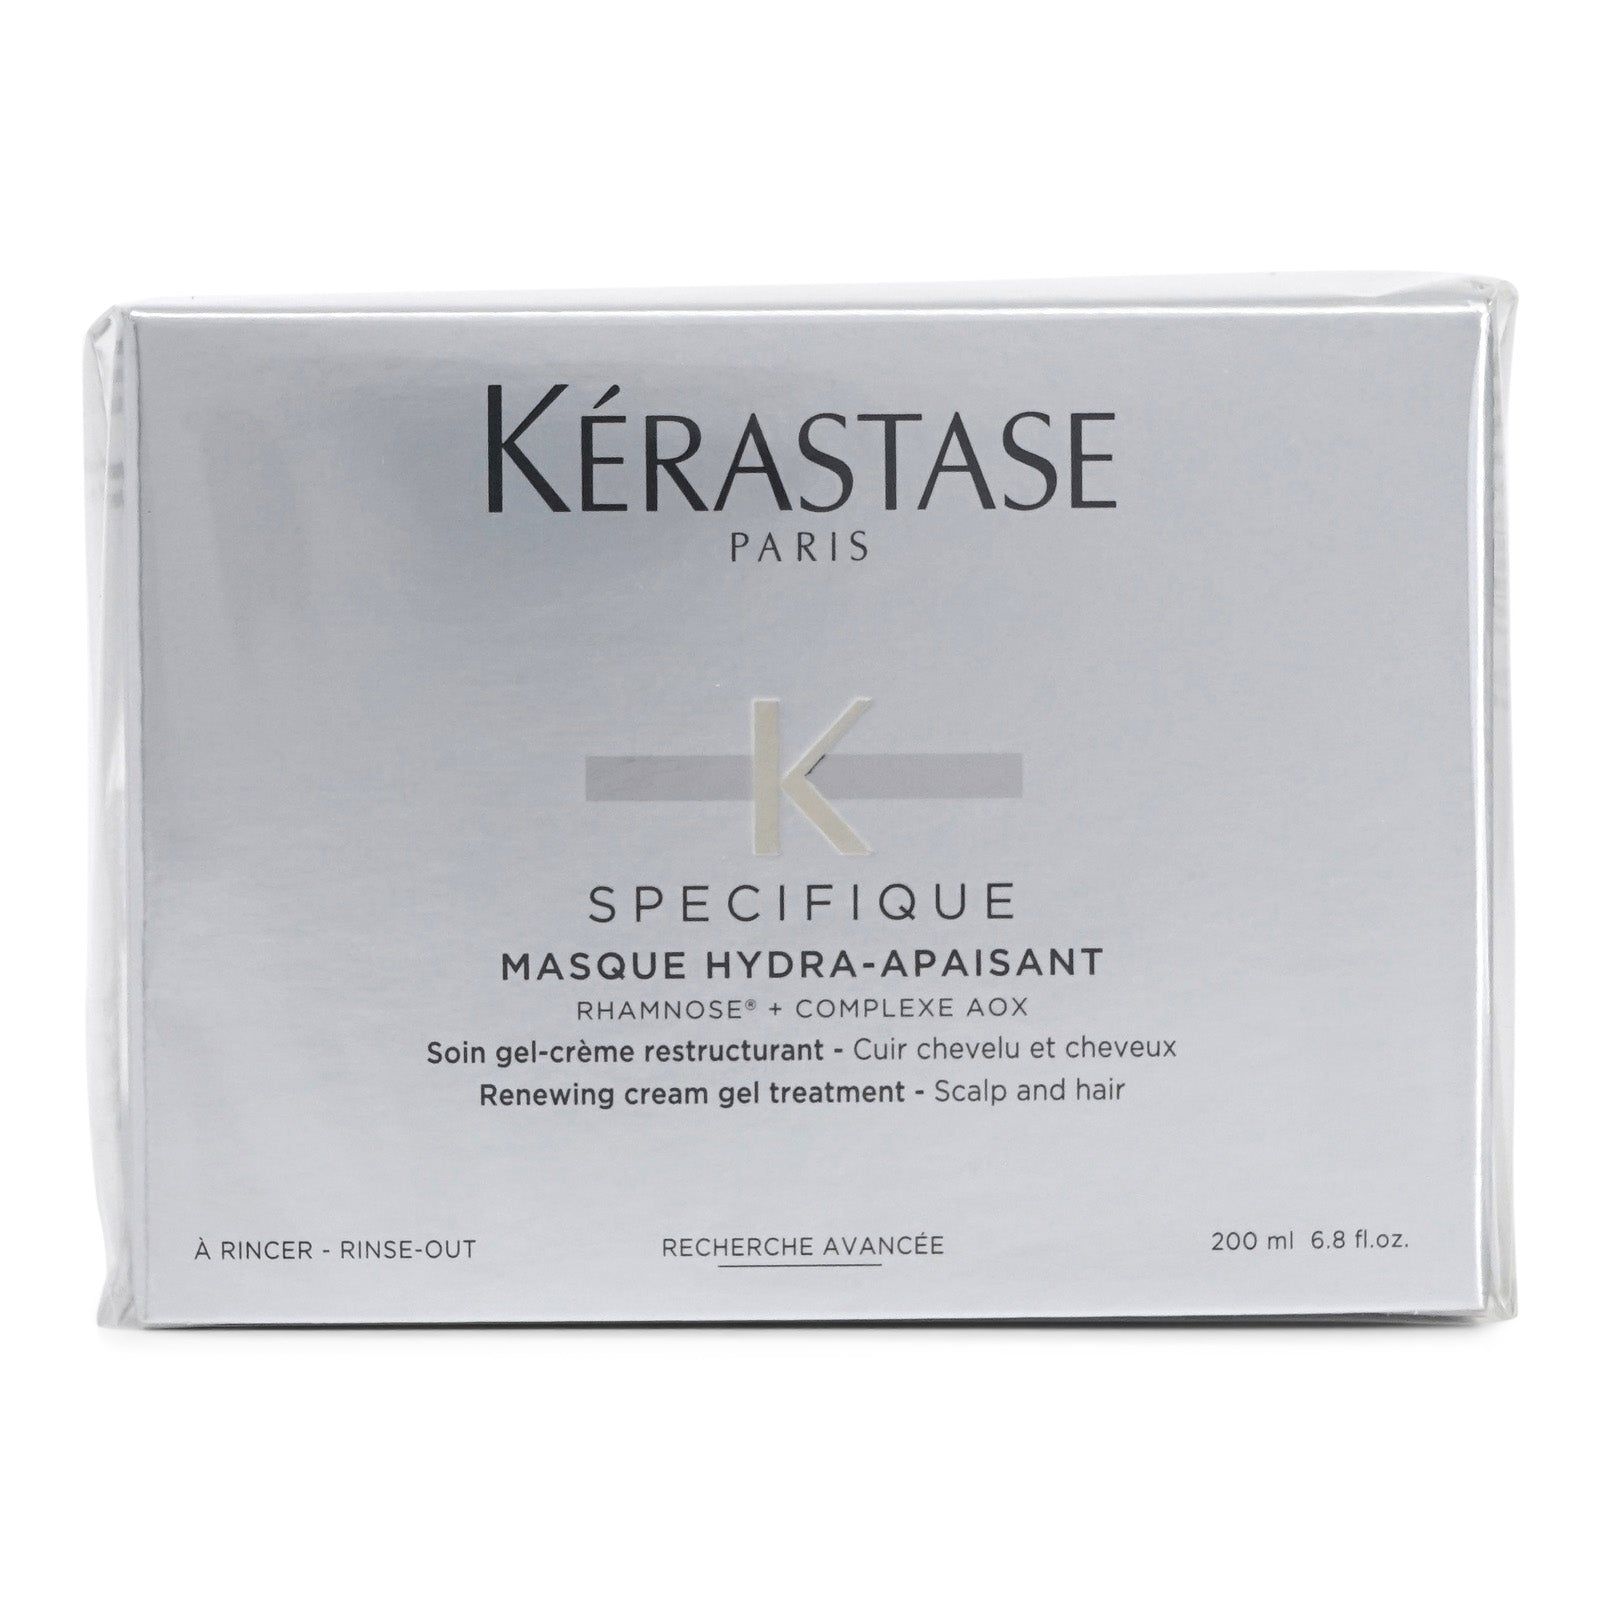 Kerastase Specifique Masque Hydra-Apaisant, concentrated antioxidant gel treatment (6.8oz/200ML) (3/cs)